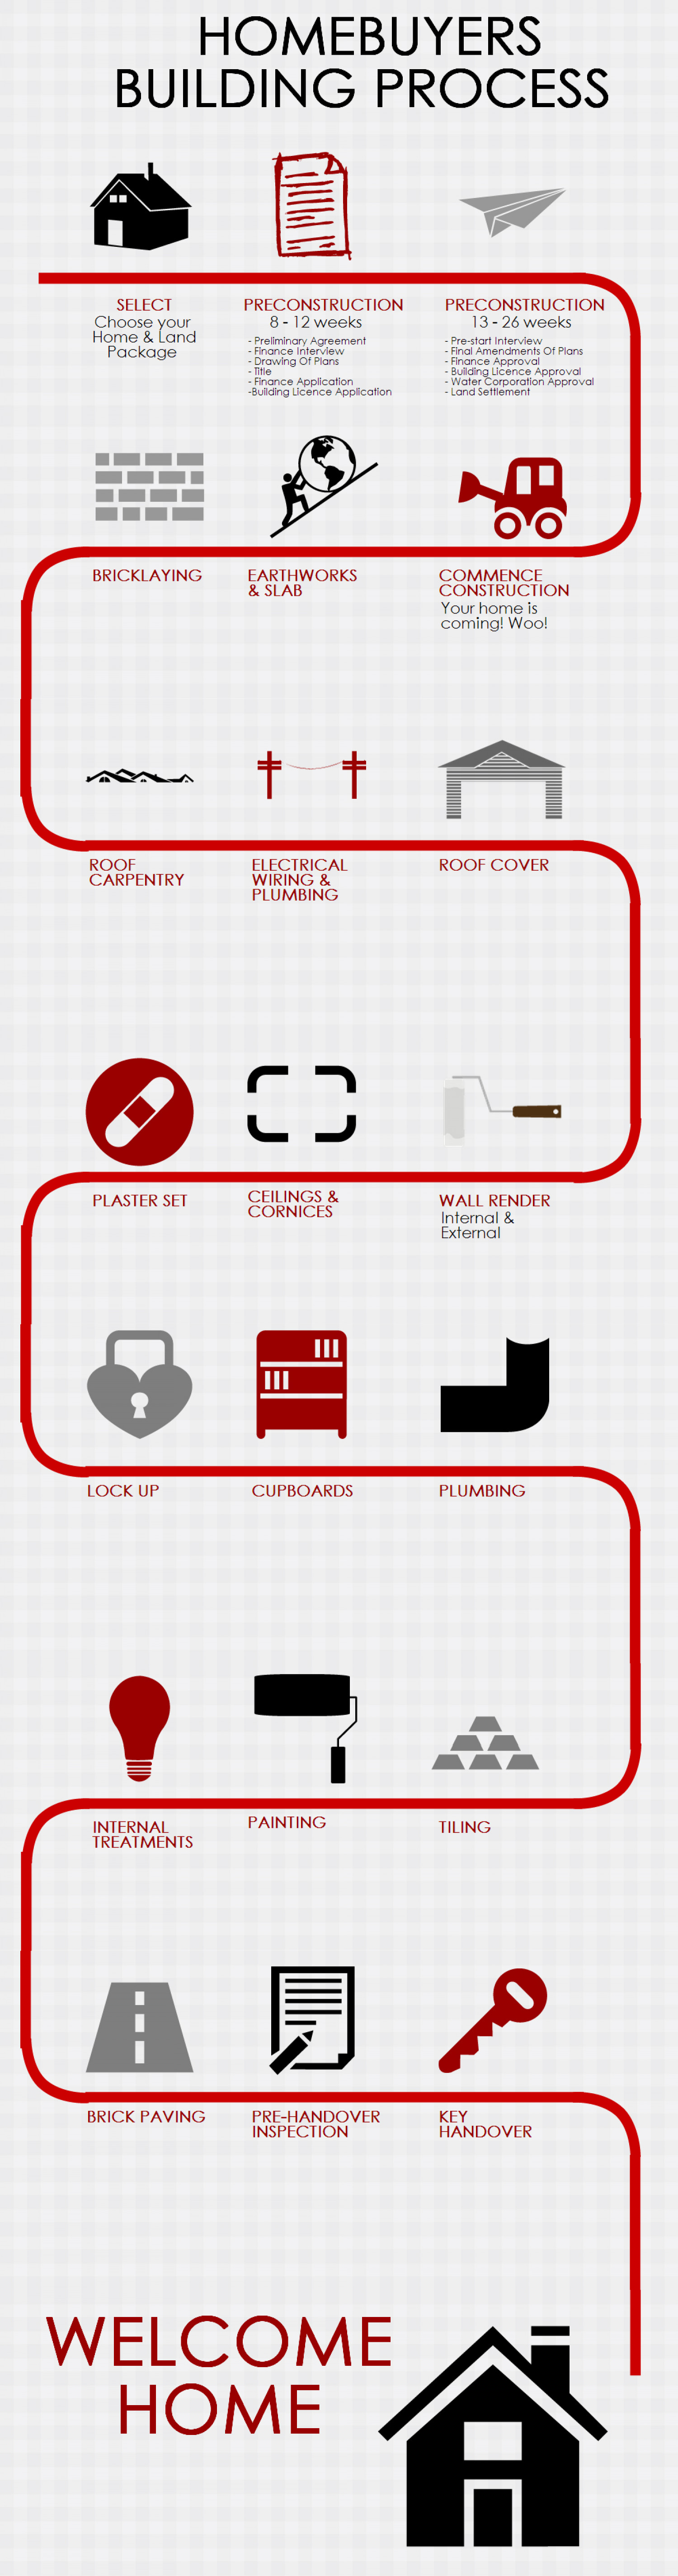 Homebuyers Centre Building Process Infographic